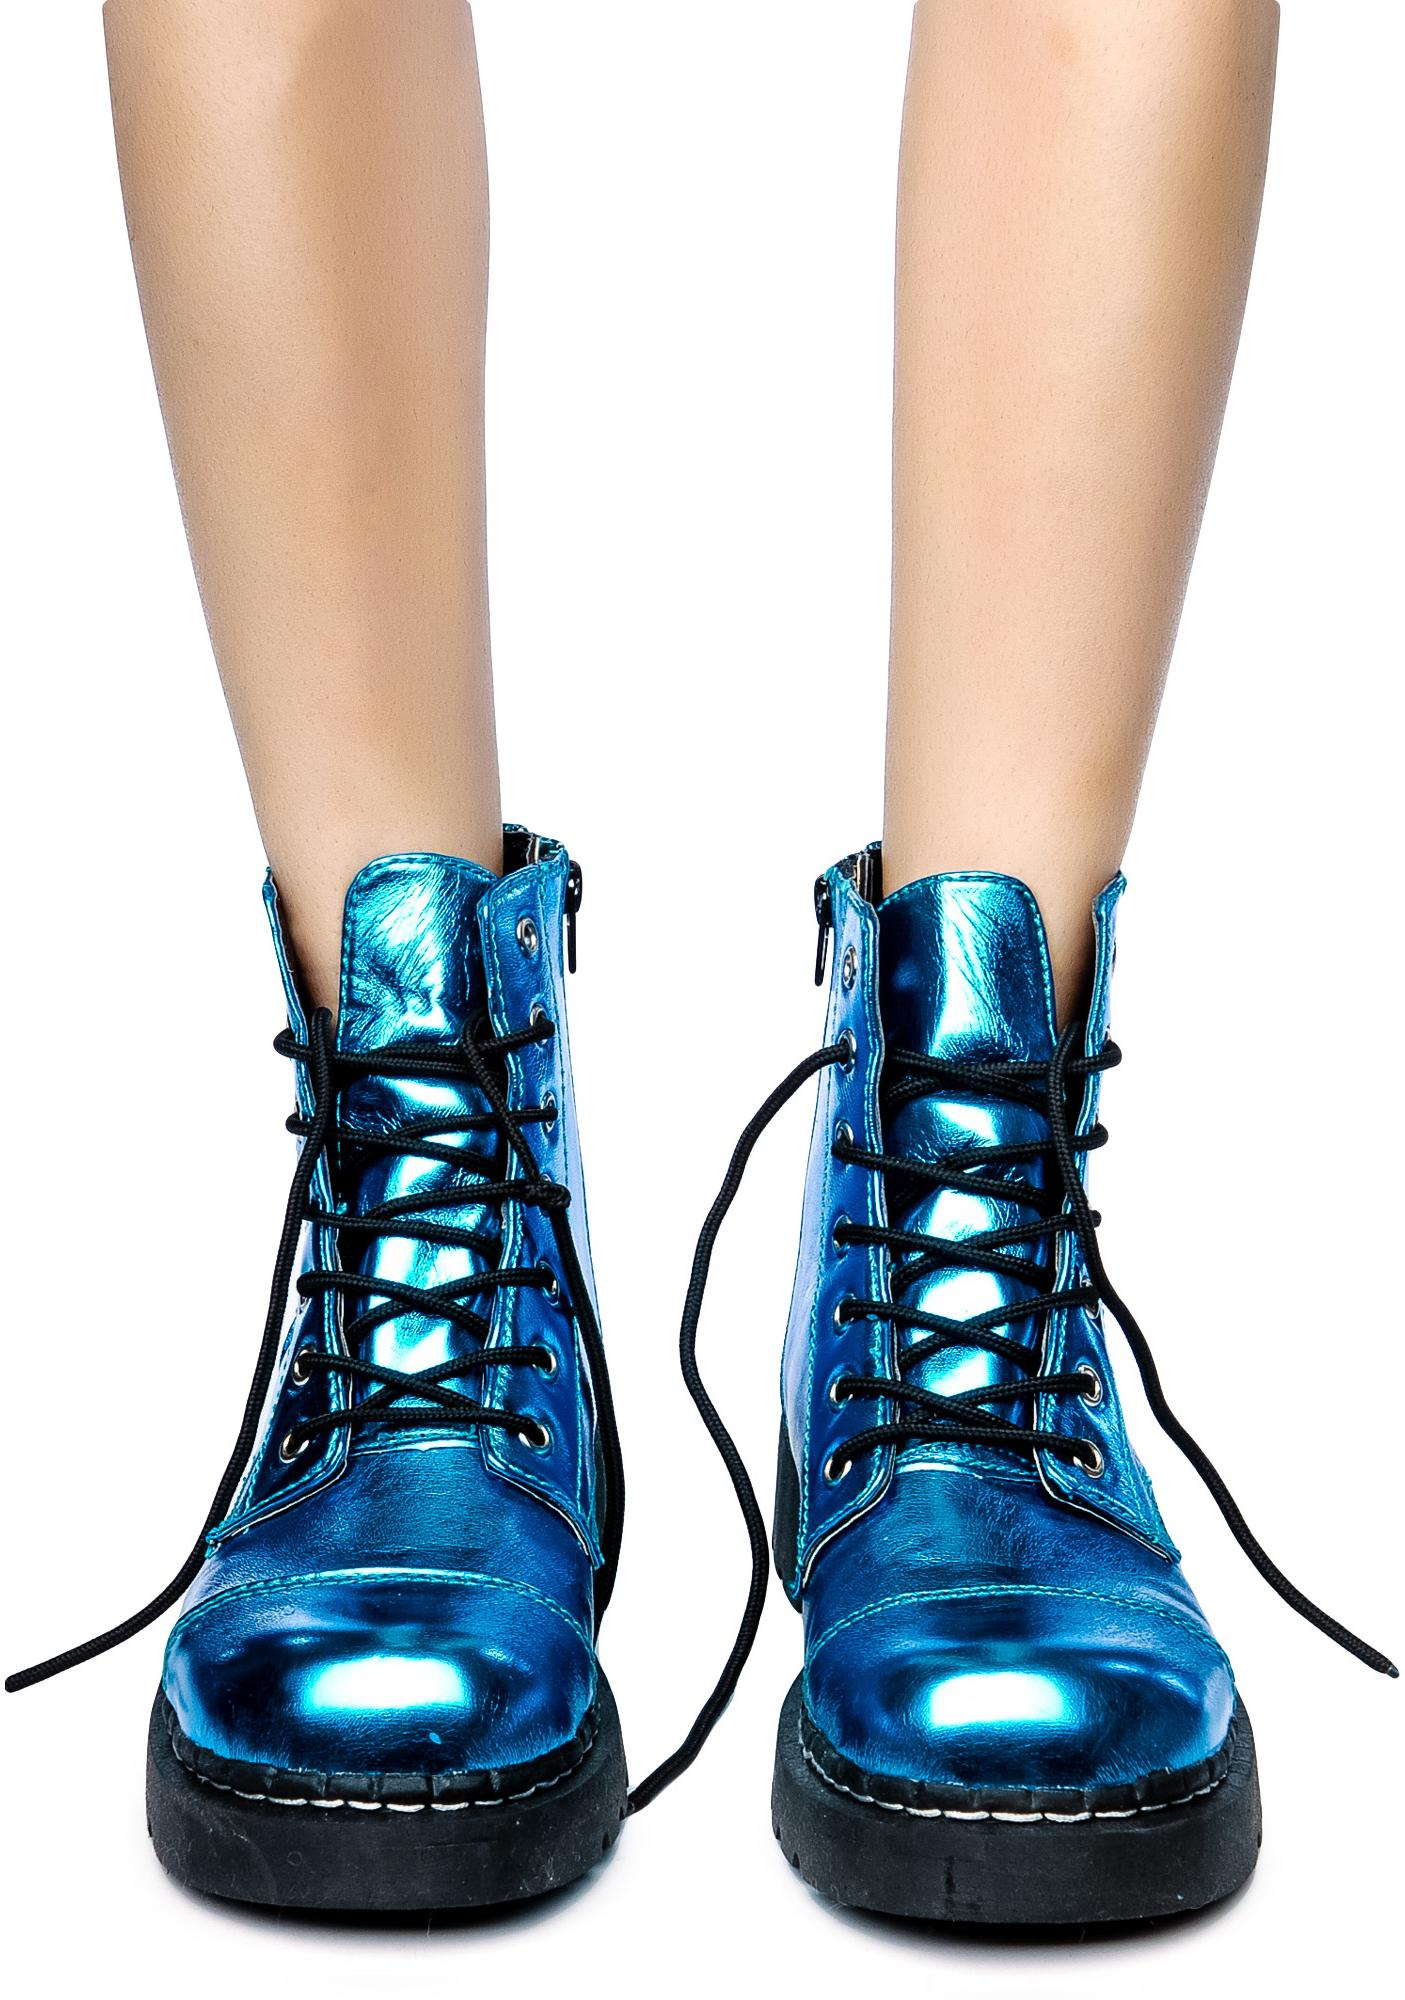 T.U.K. Metallic 7 Eye Boot